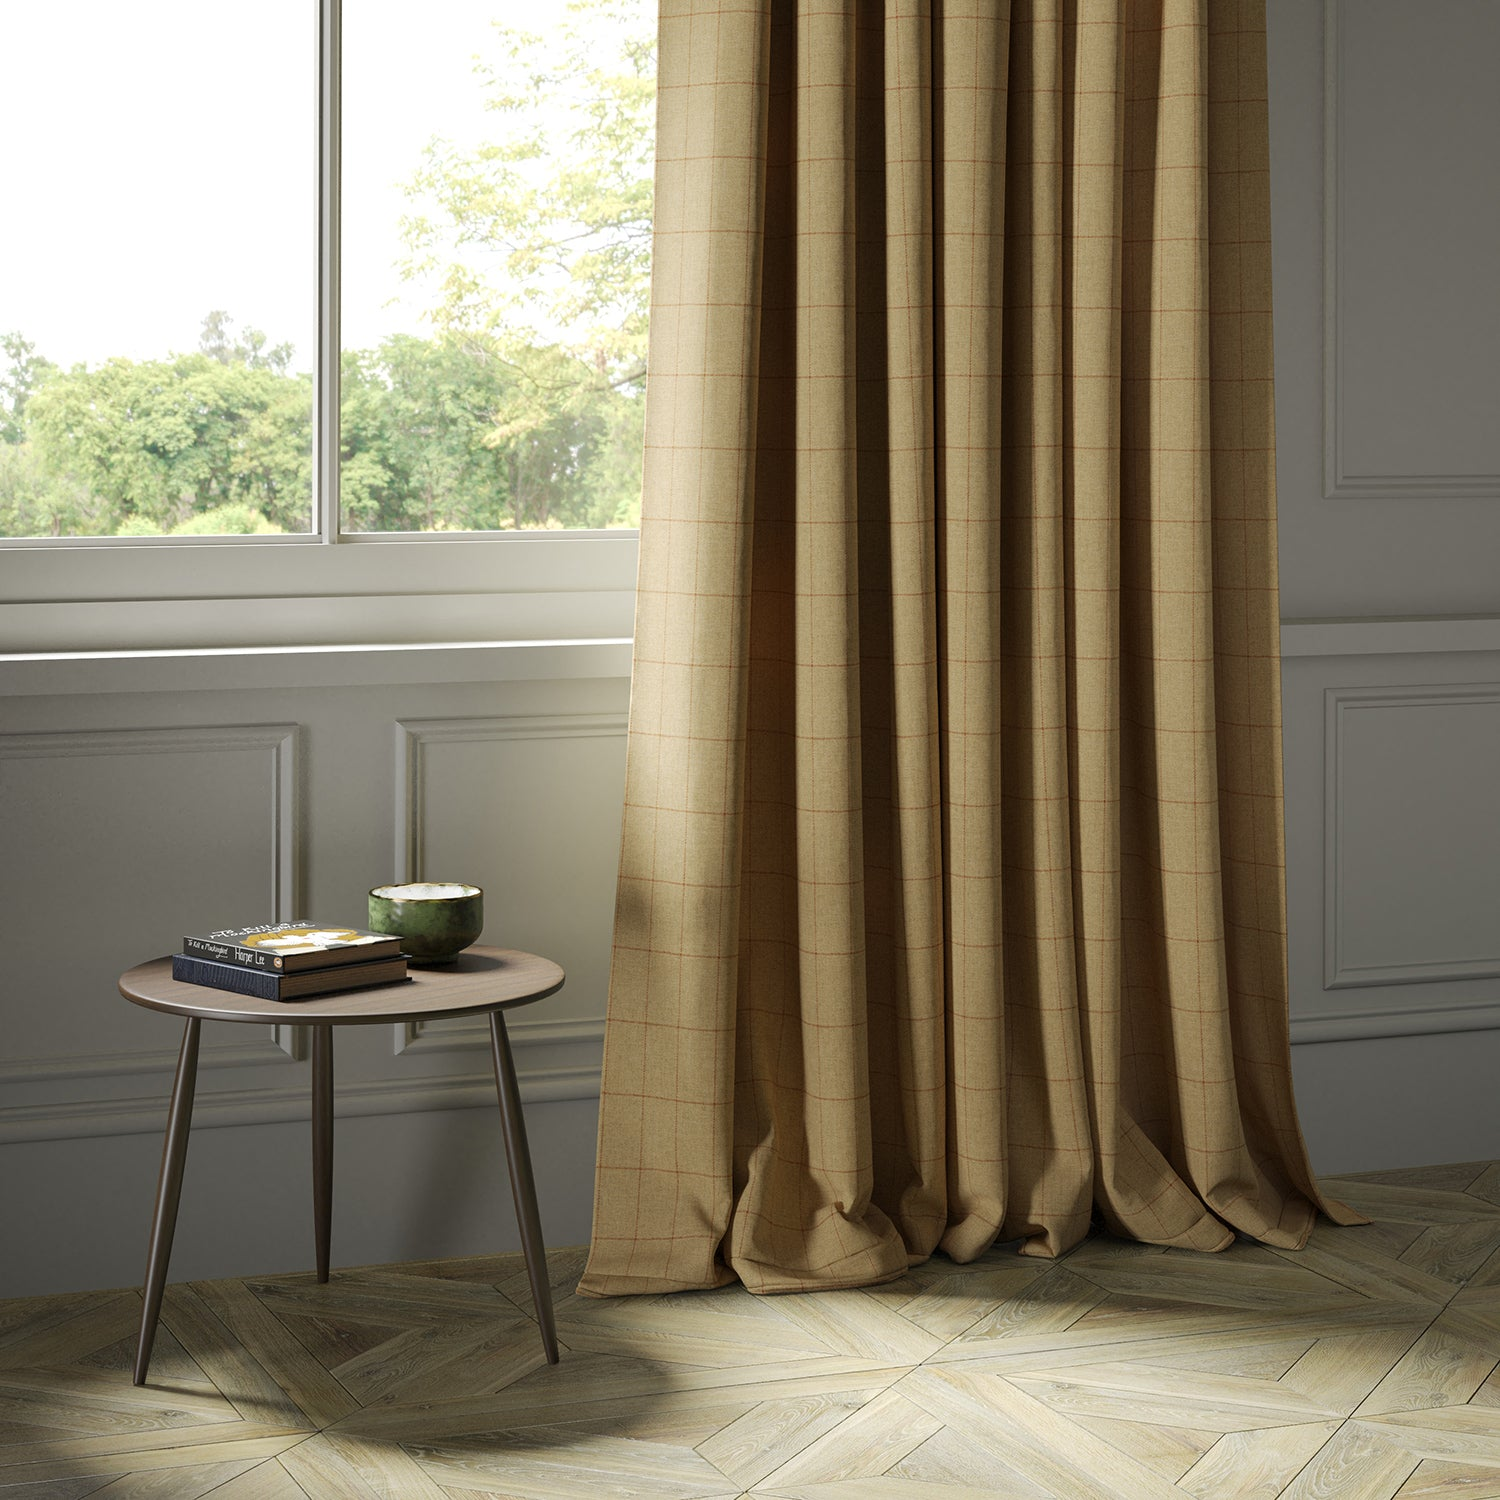 Curtains in a beige Scottish wool windowpane check fabric